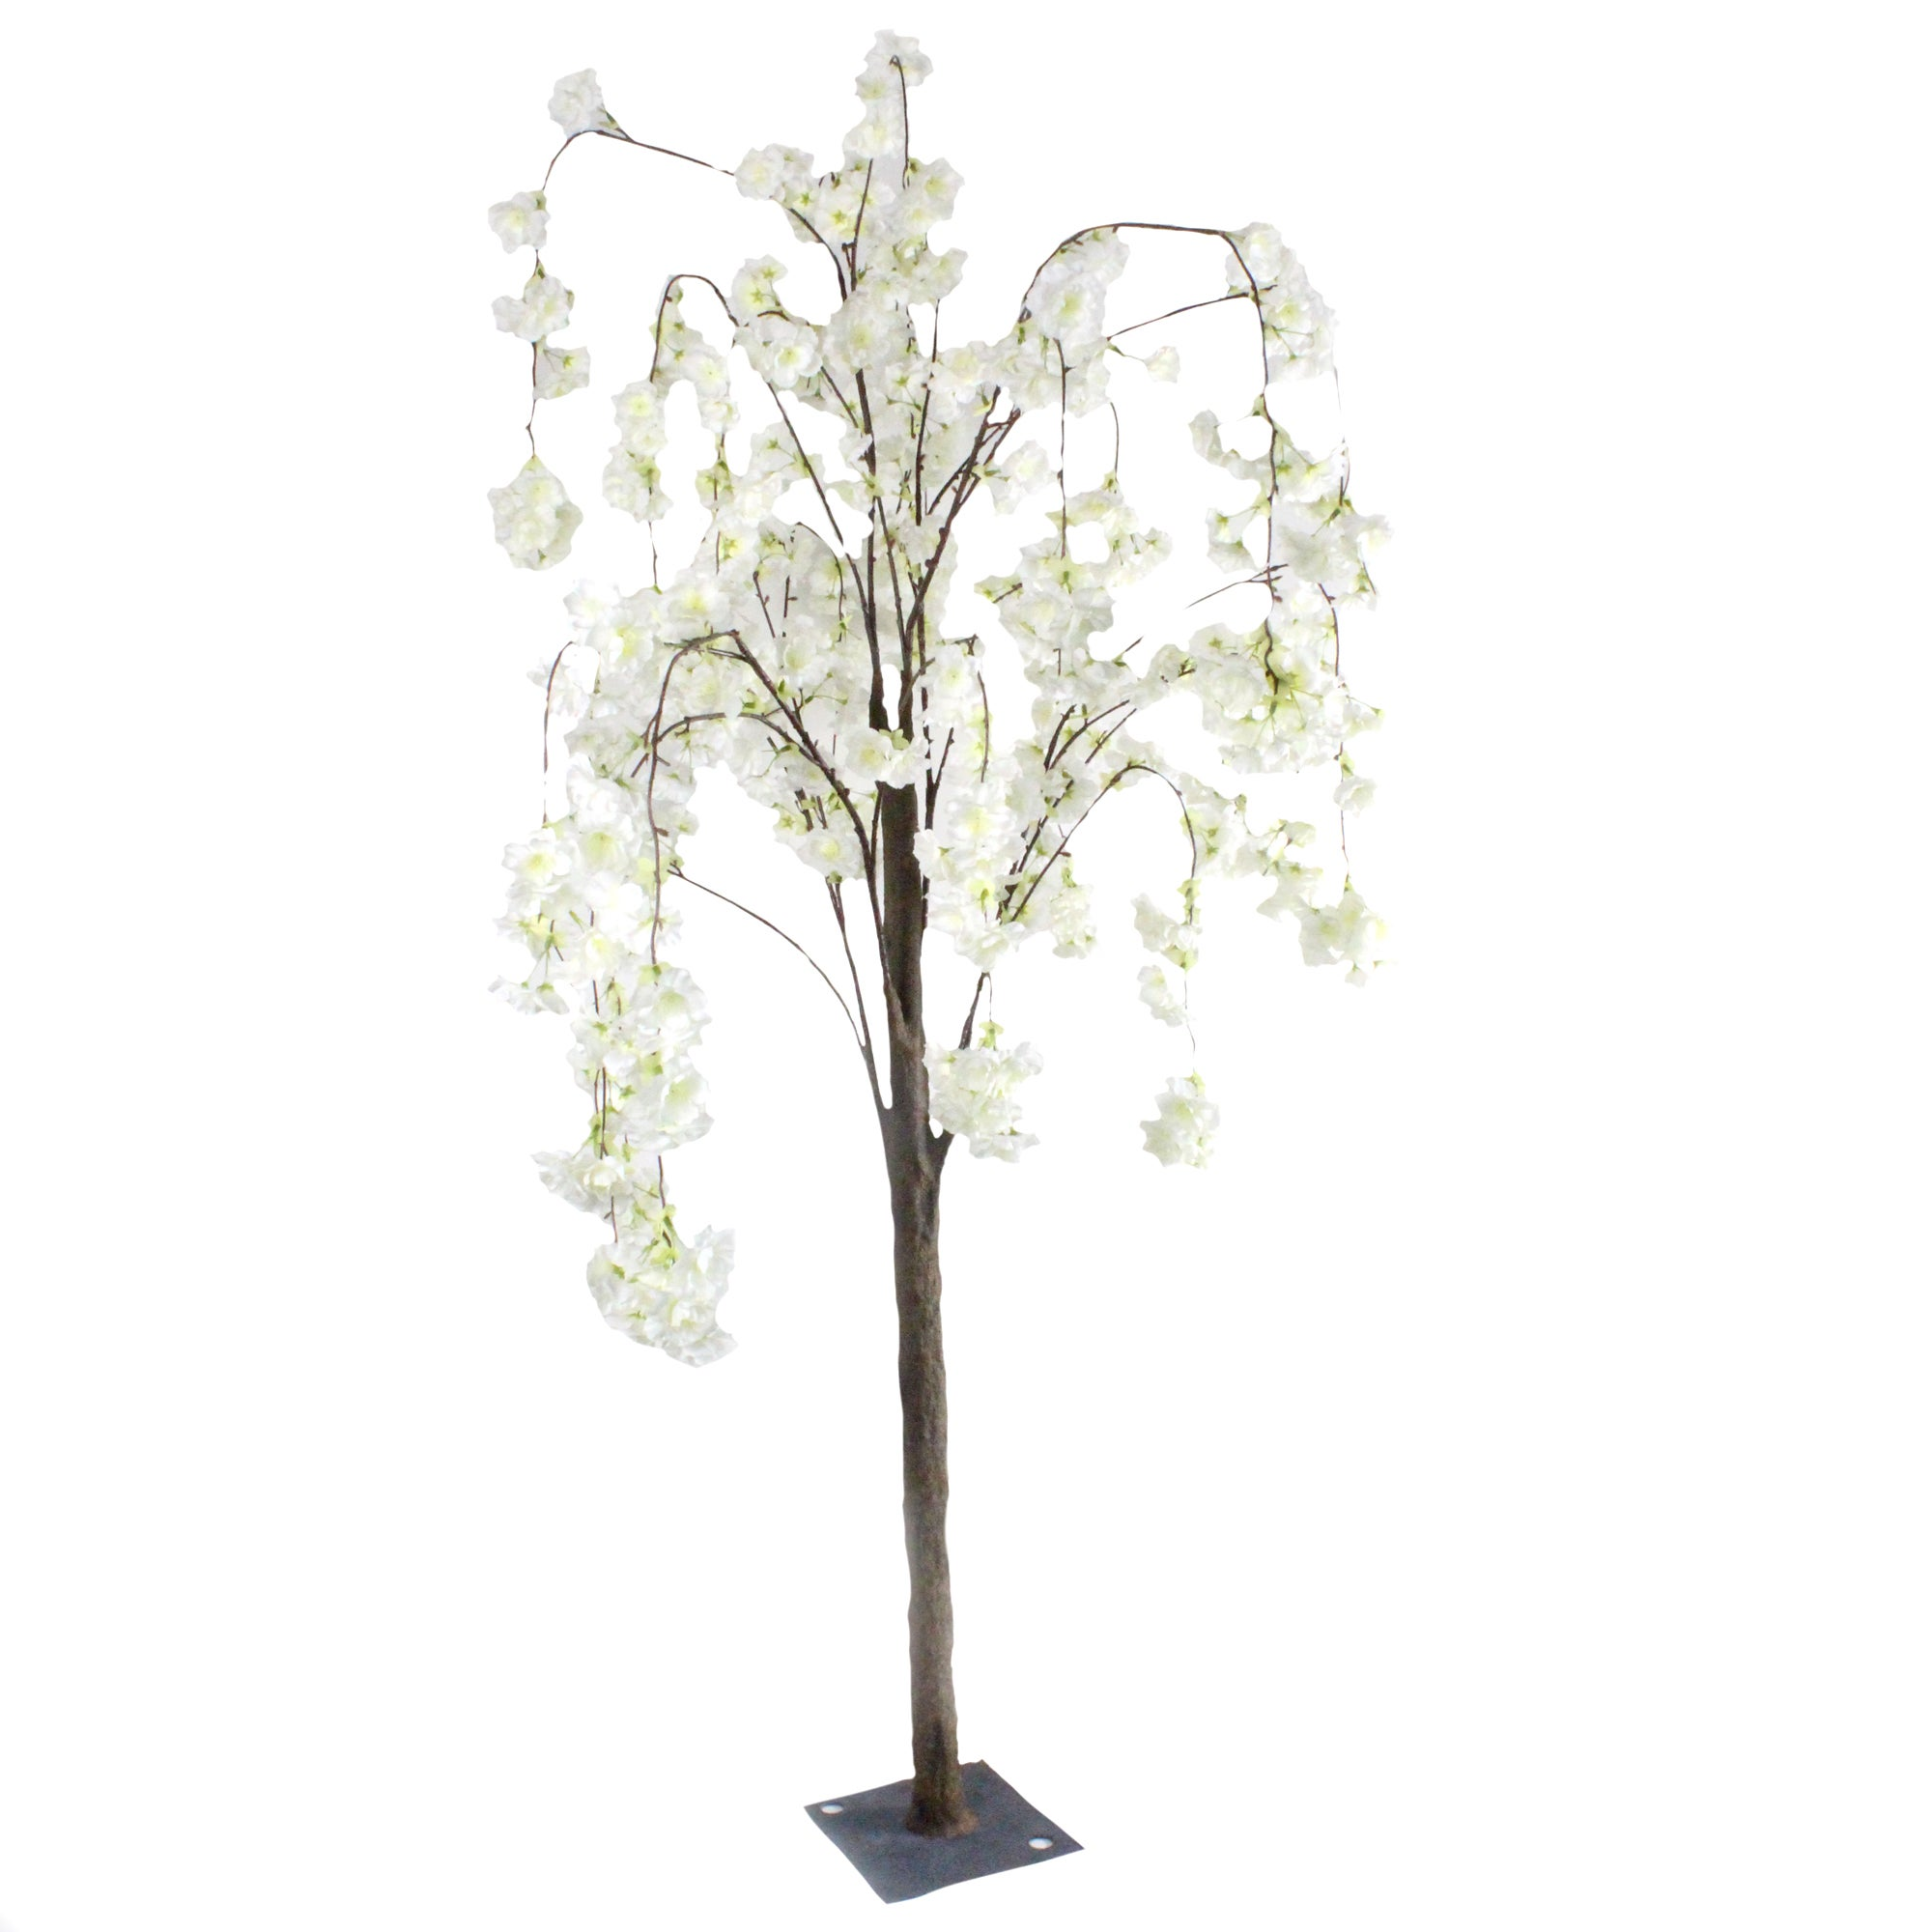 Image of 1.4m Blossom Tree Cream